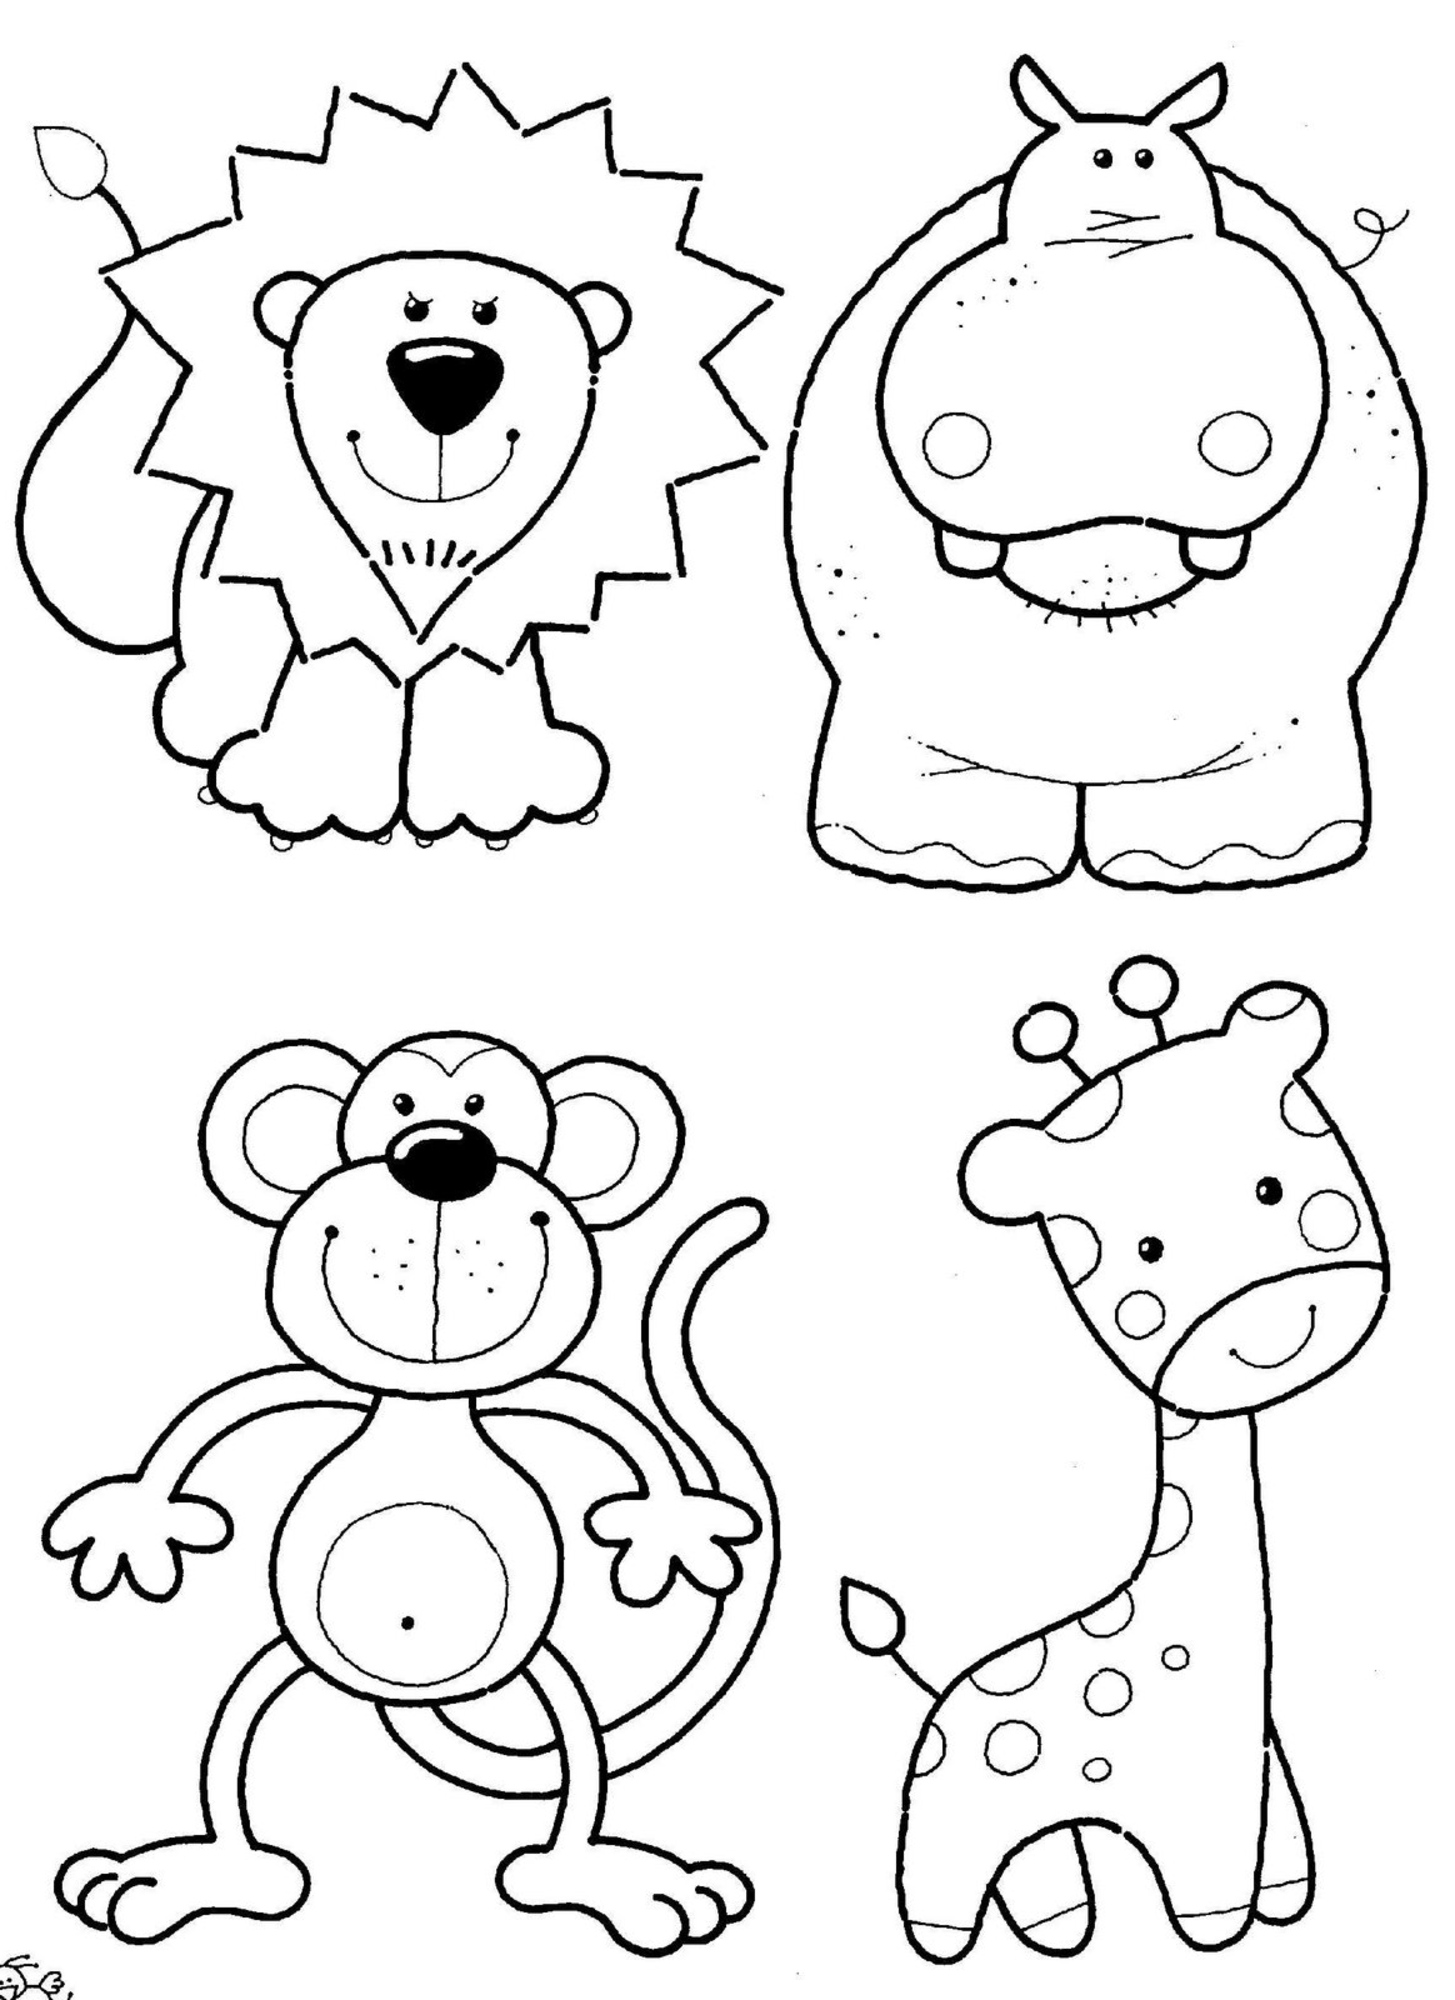 animal coloring pages free - photo#4